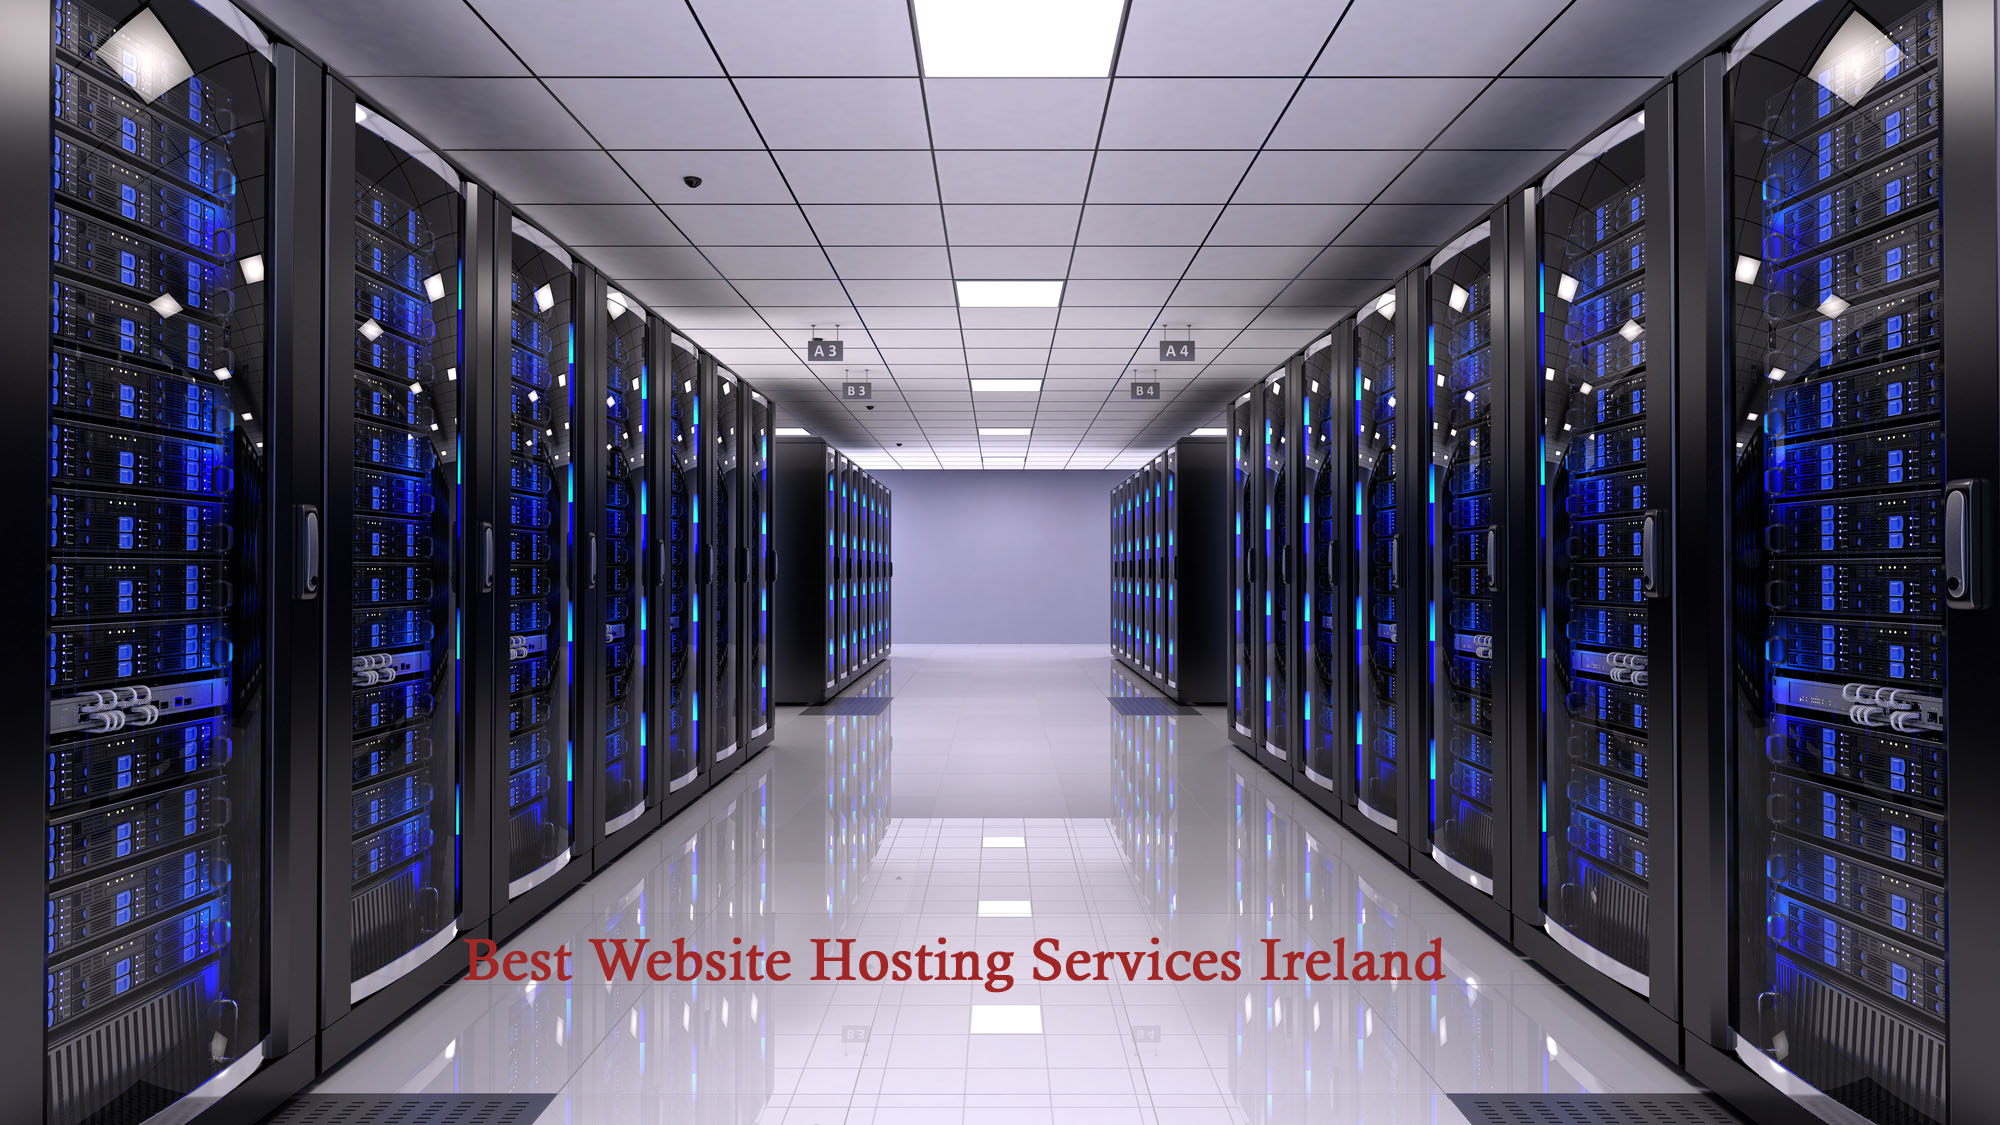 Best Website Hosting Services Ireland